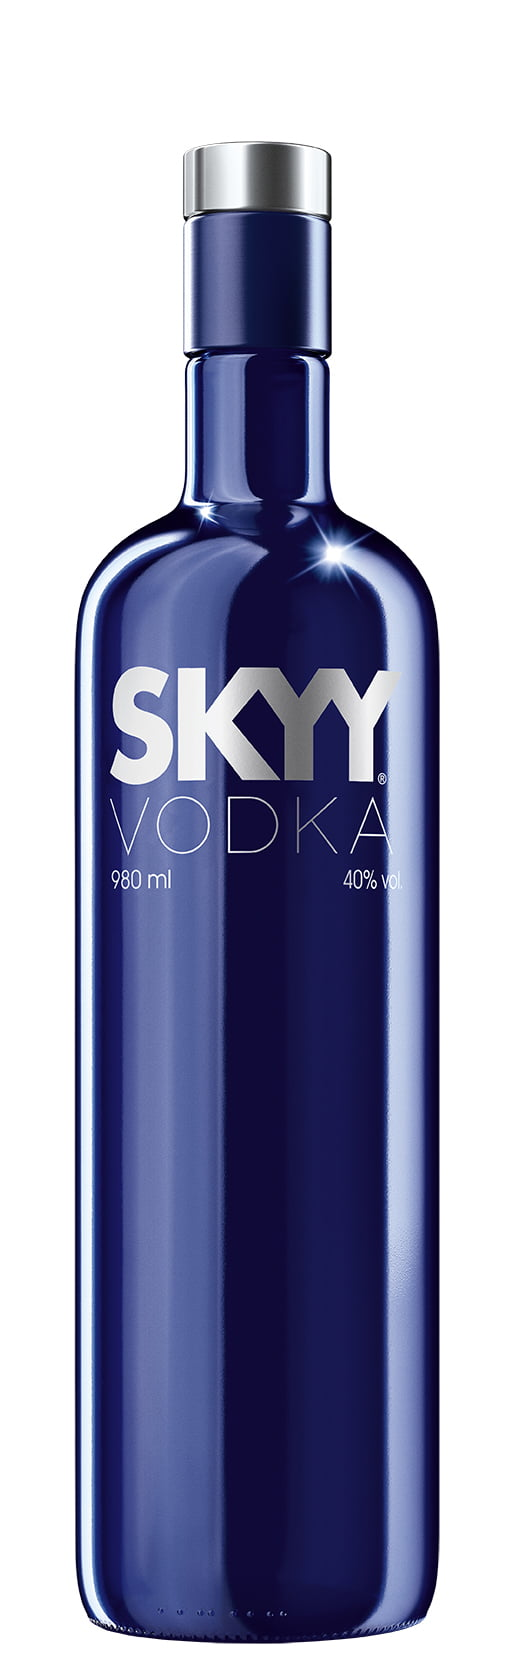 Vodka Skyy 980ml